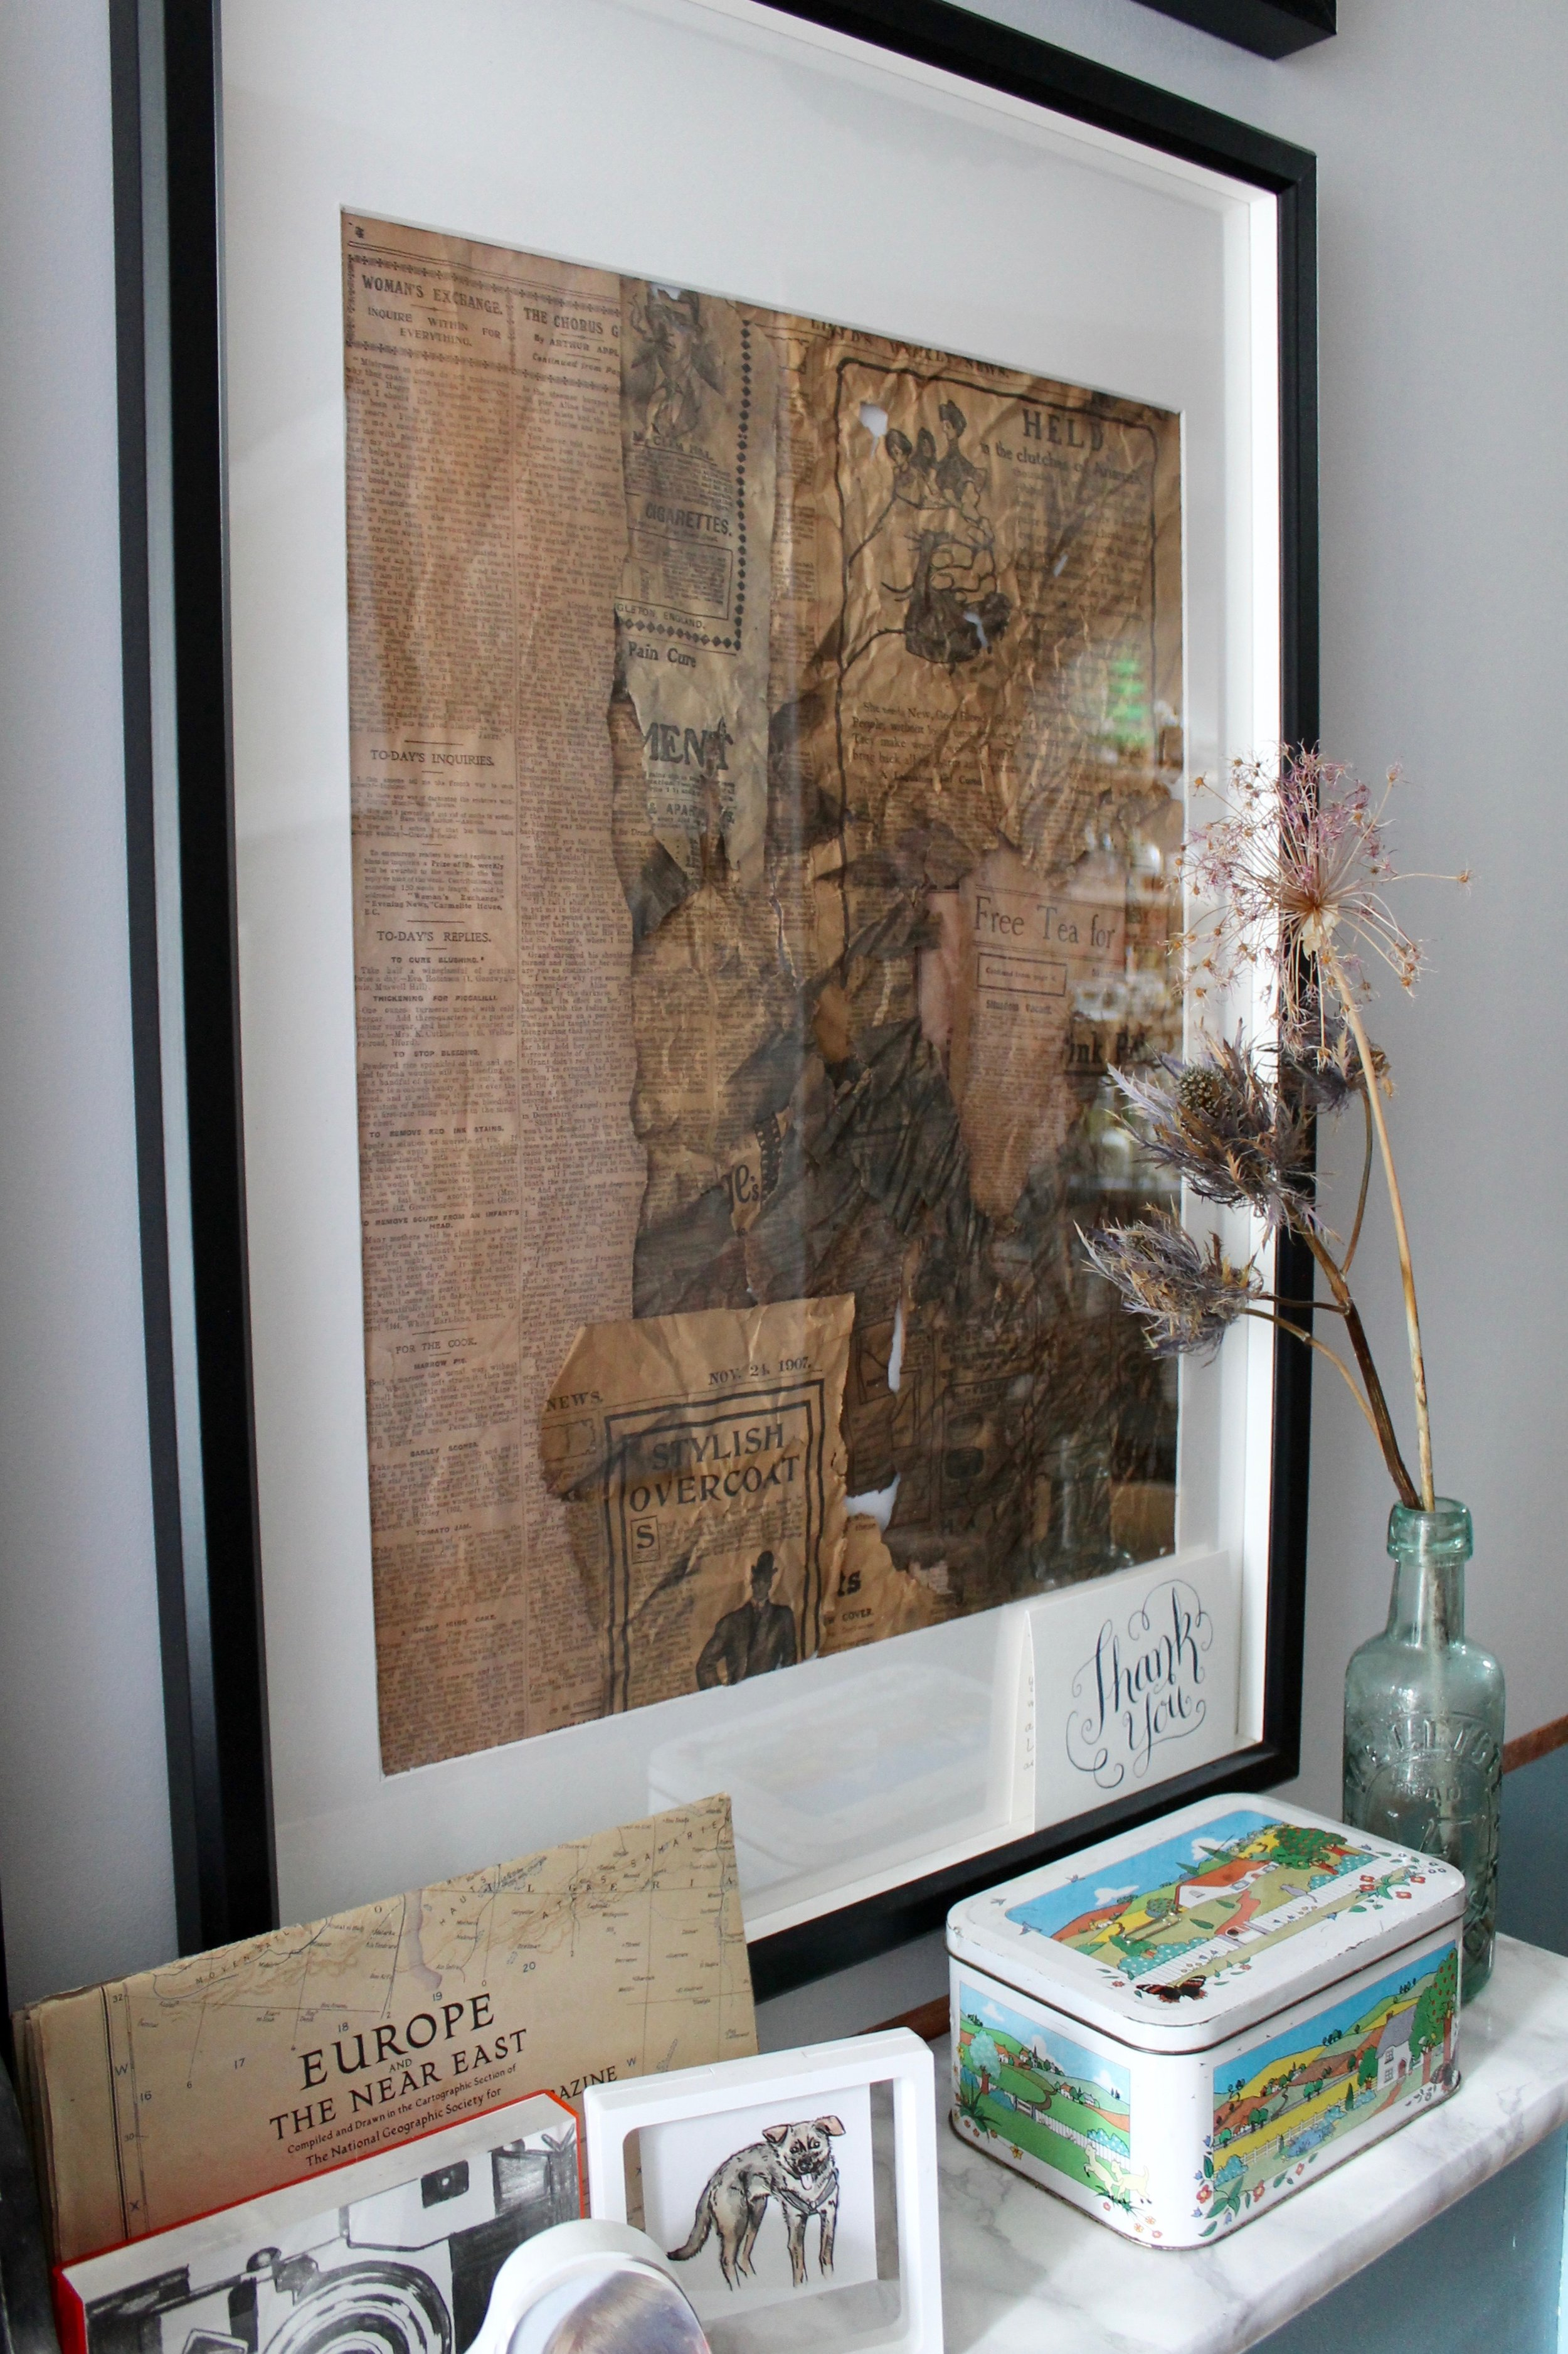 Photography provided by Joanna Thornhill - Framed newspaper scraps also found under the floorboards during renovations.